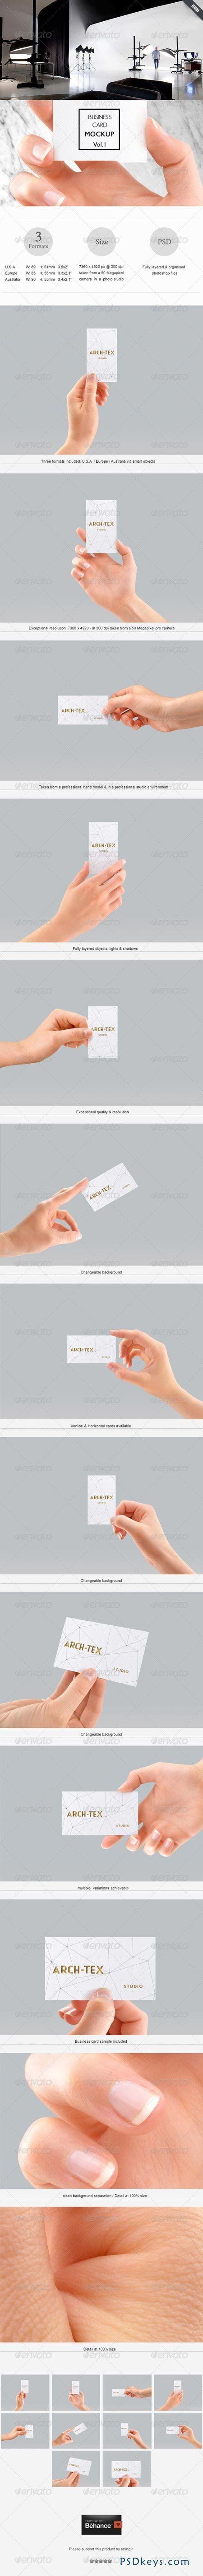 416 best :: business cards images on Pinterest | Boxes, Good ideas ...